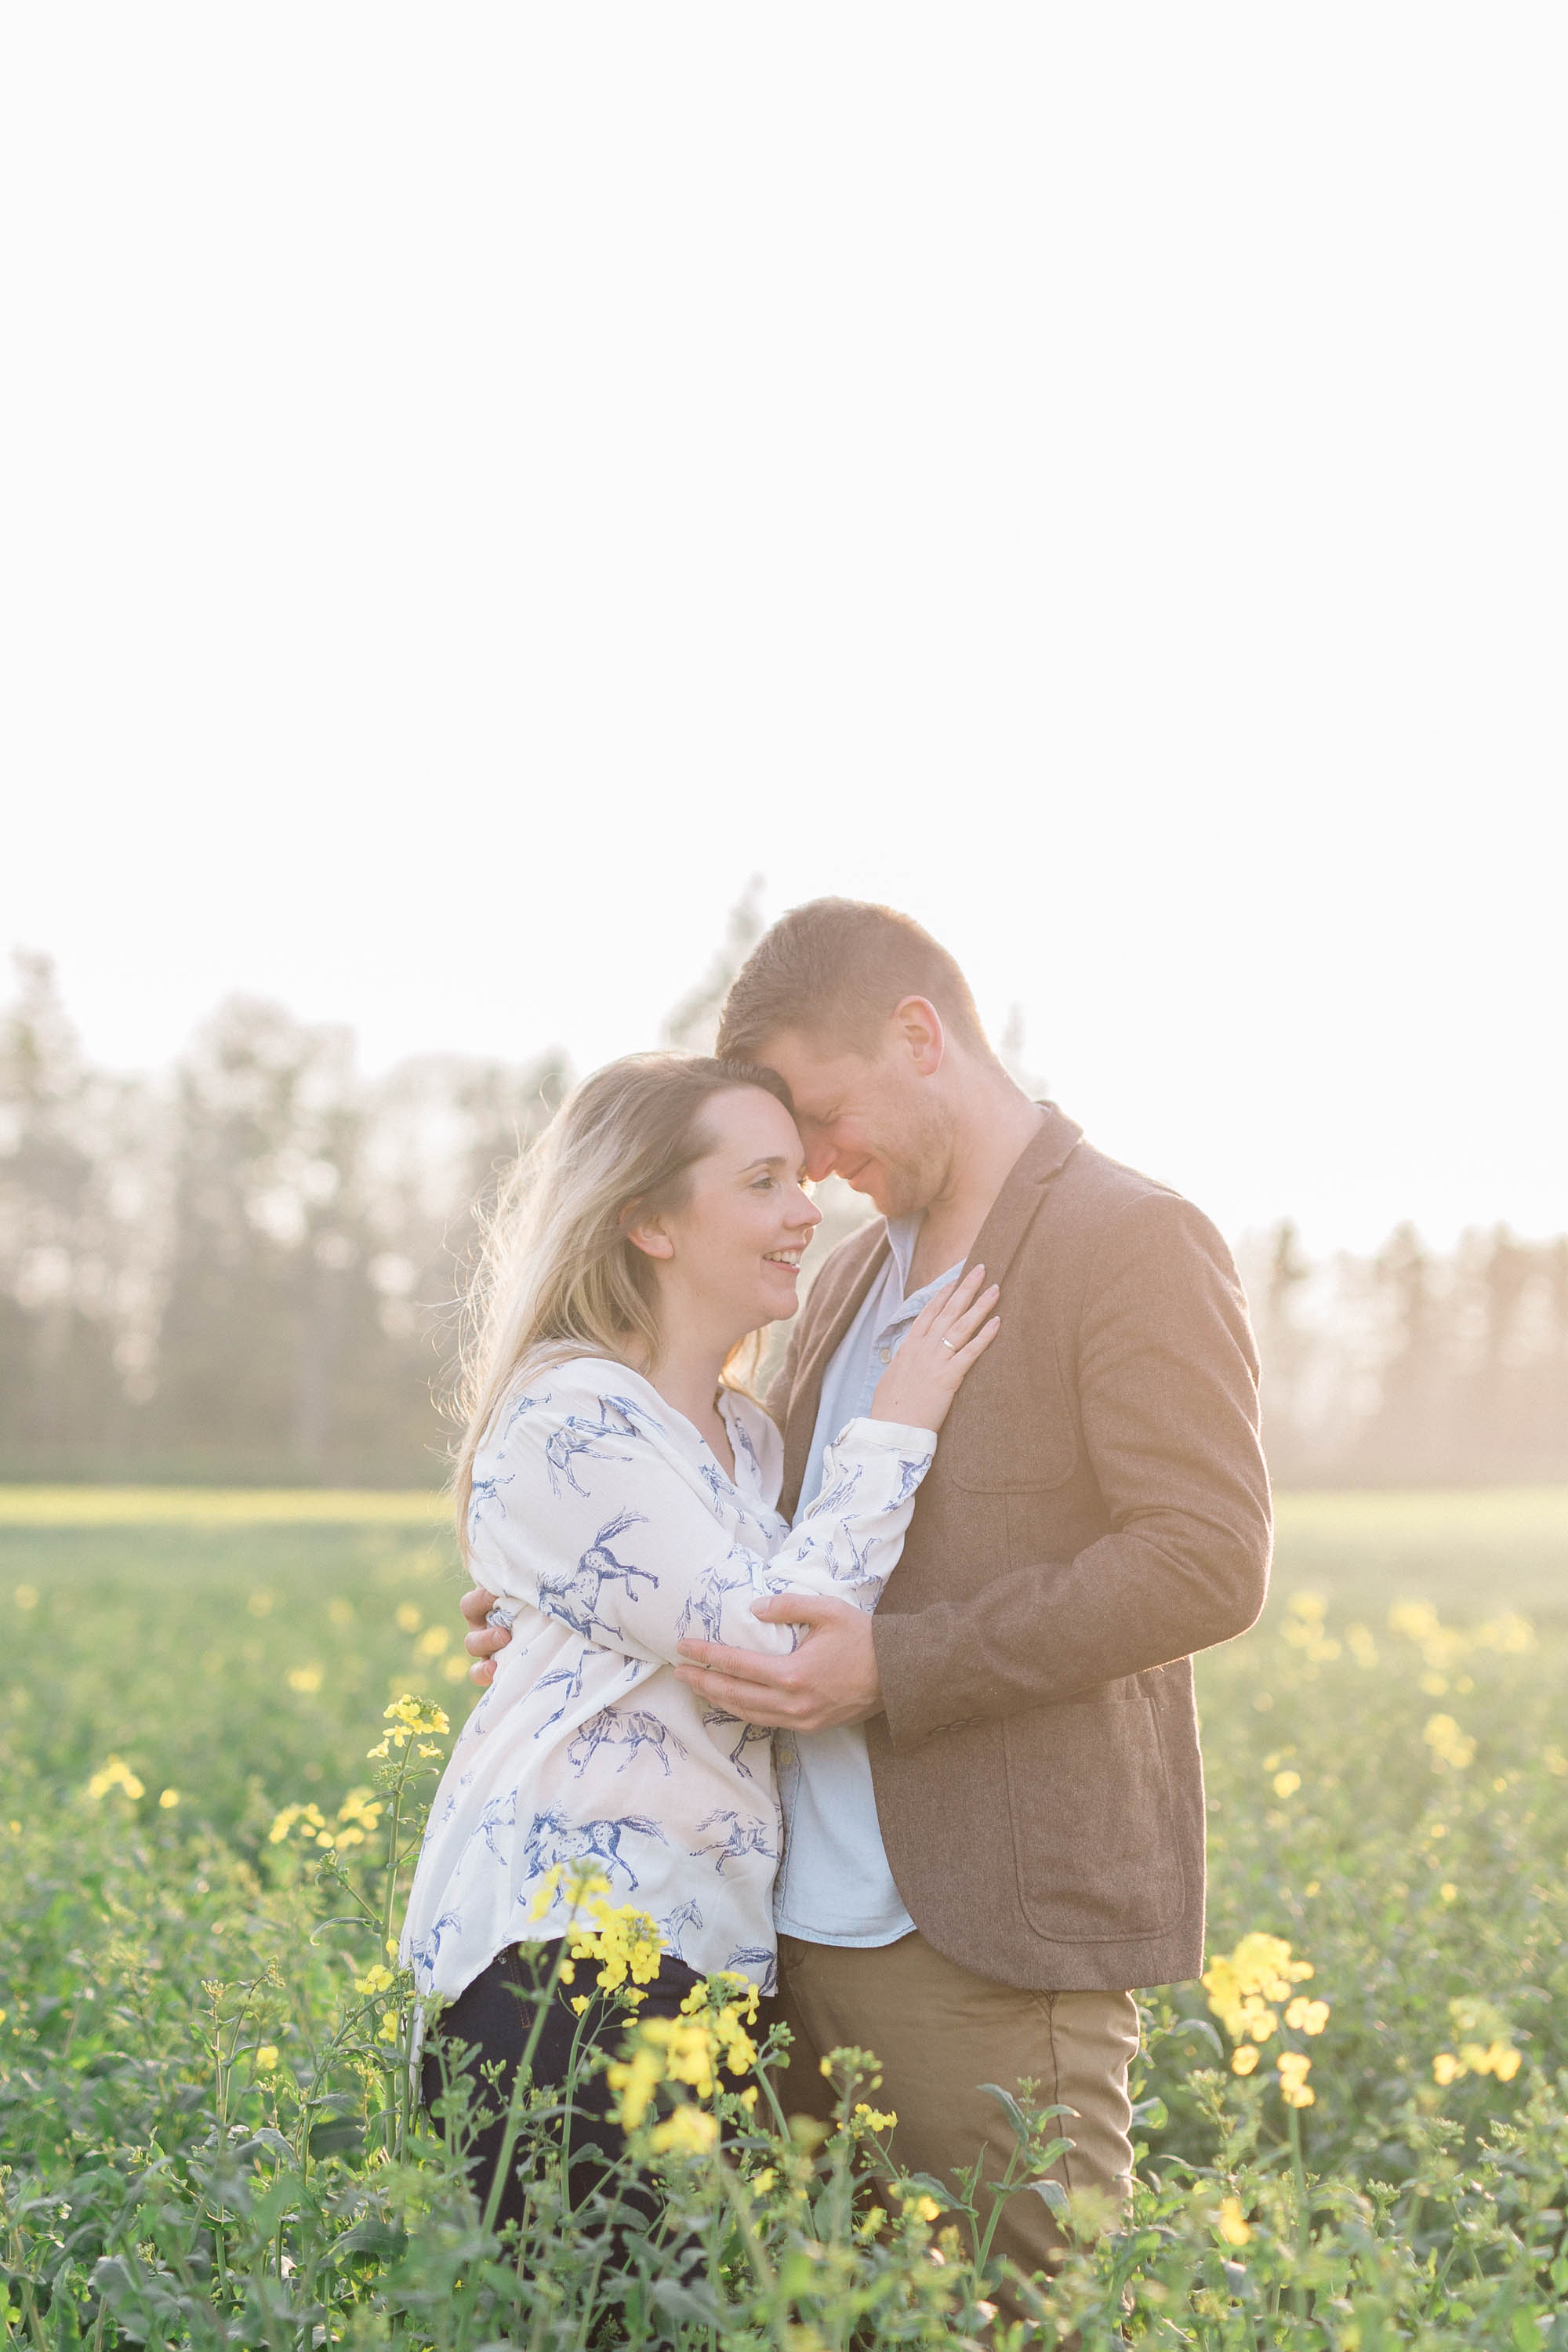 suzanne_li_photography_rowanpaul_engagement-78.jpg